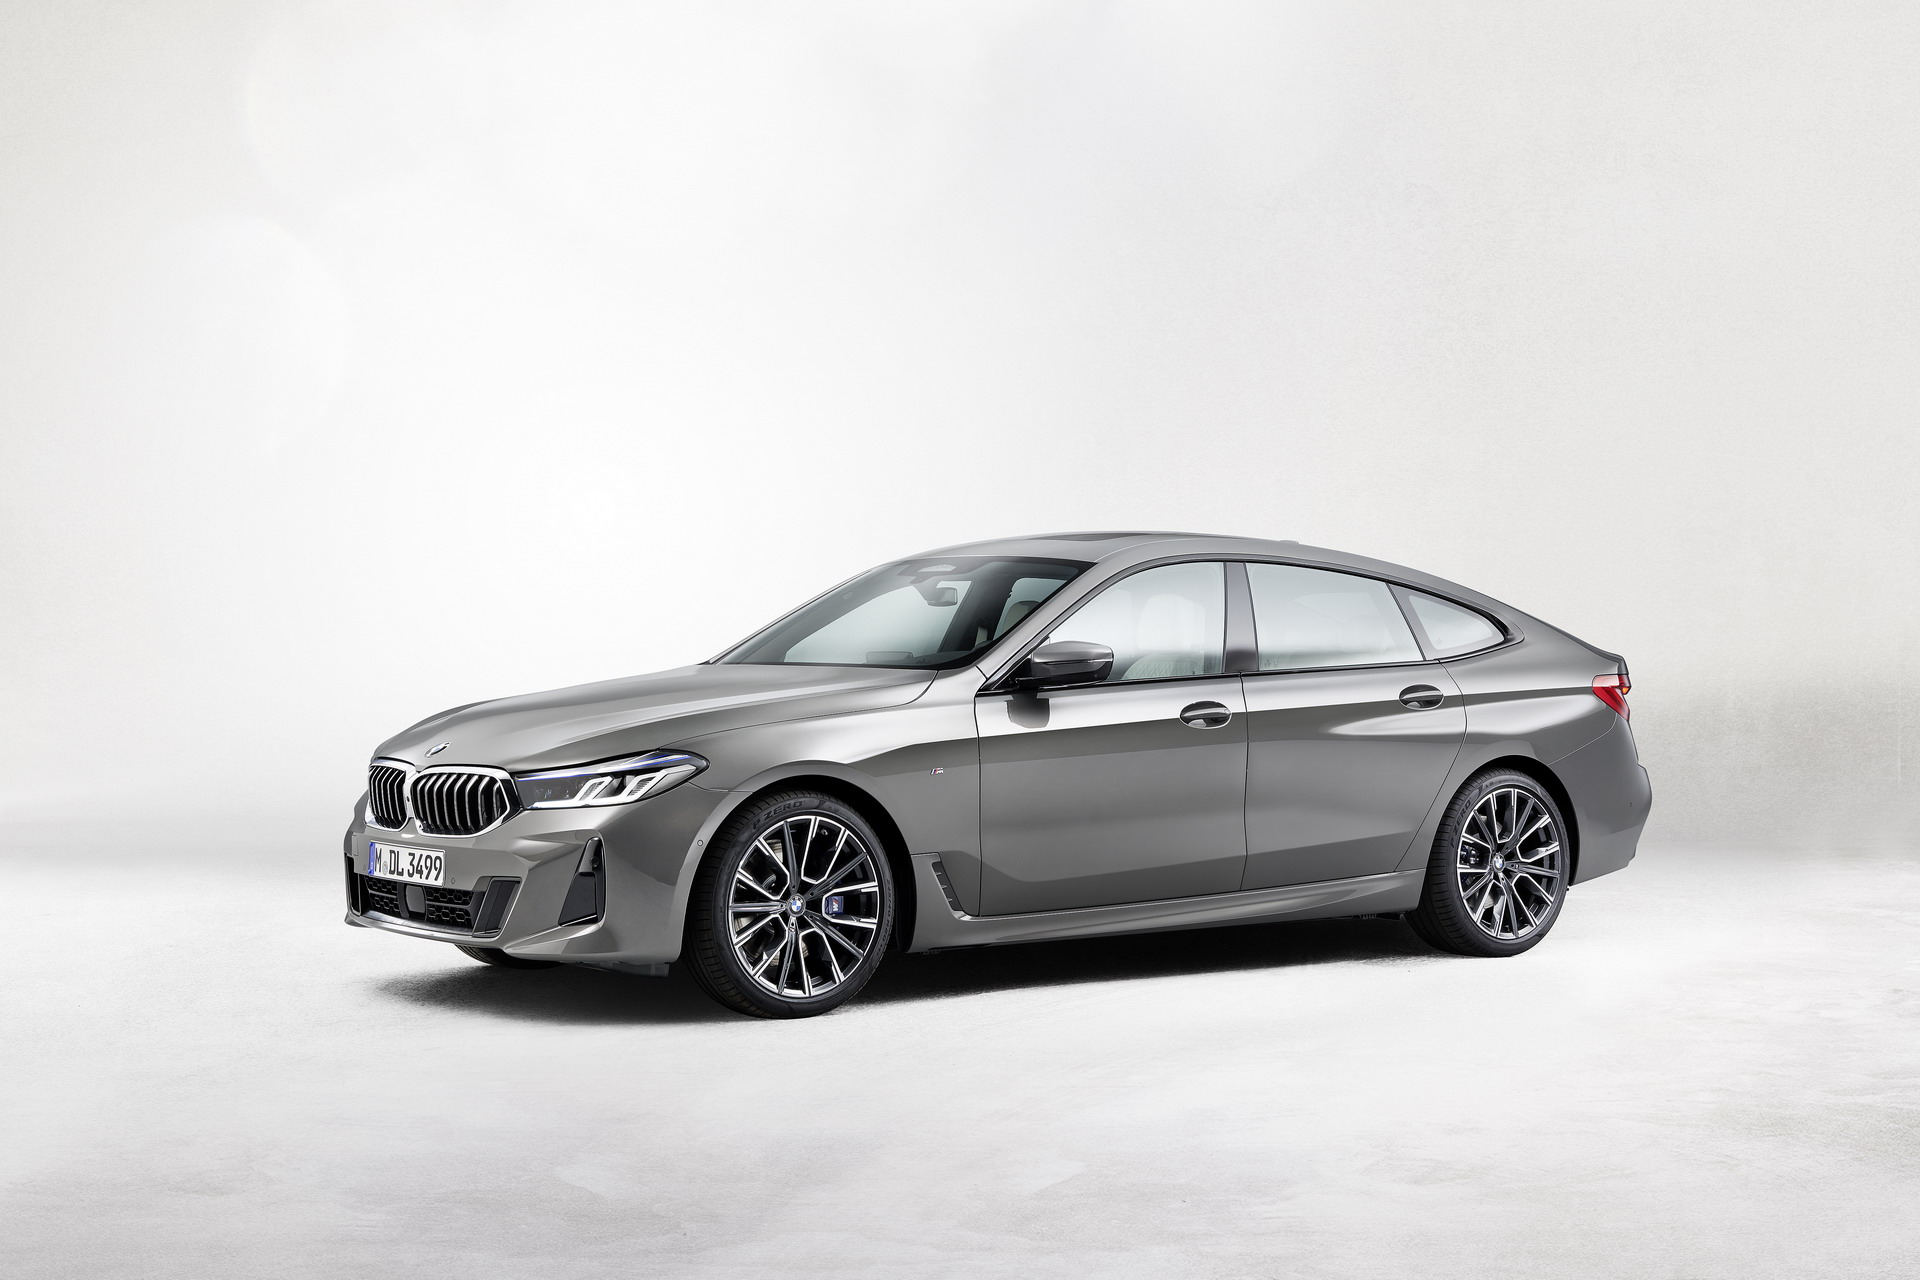 The New BMW 640i xDrive GT G32 LCI 9